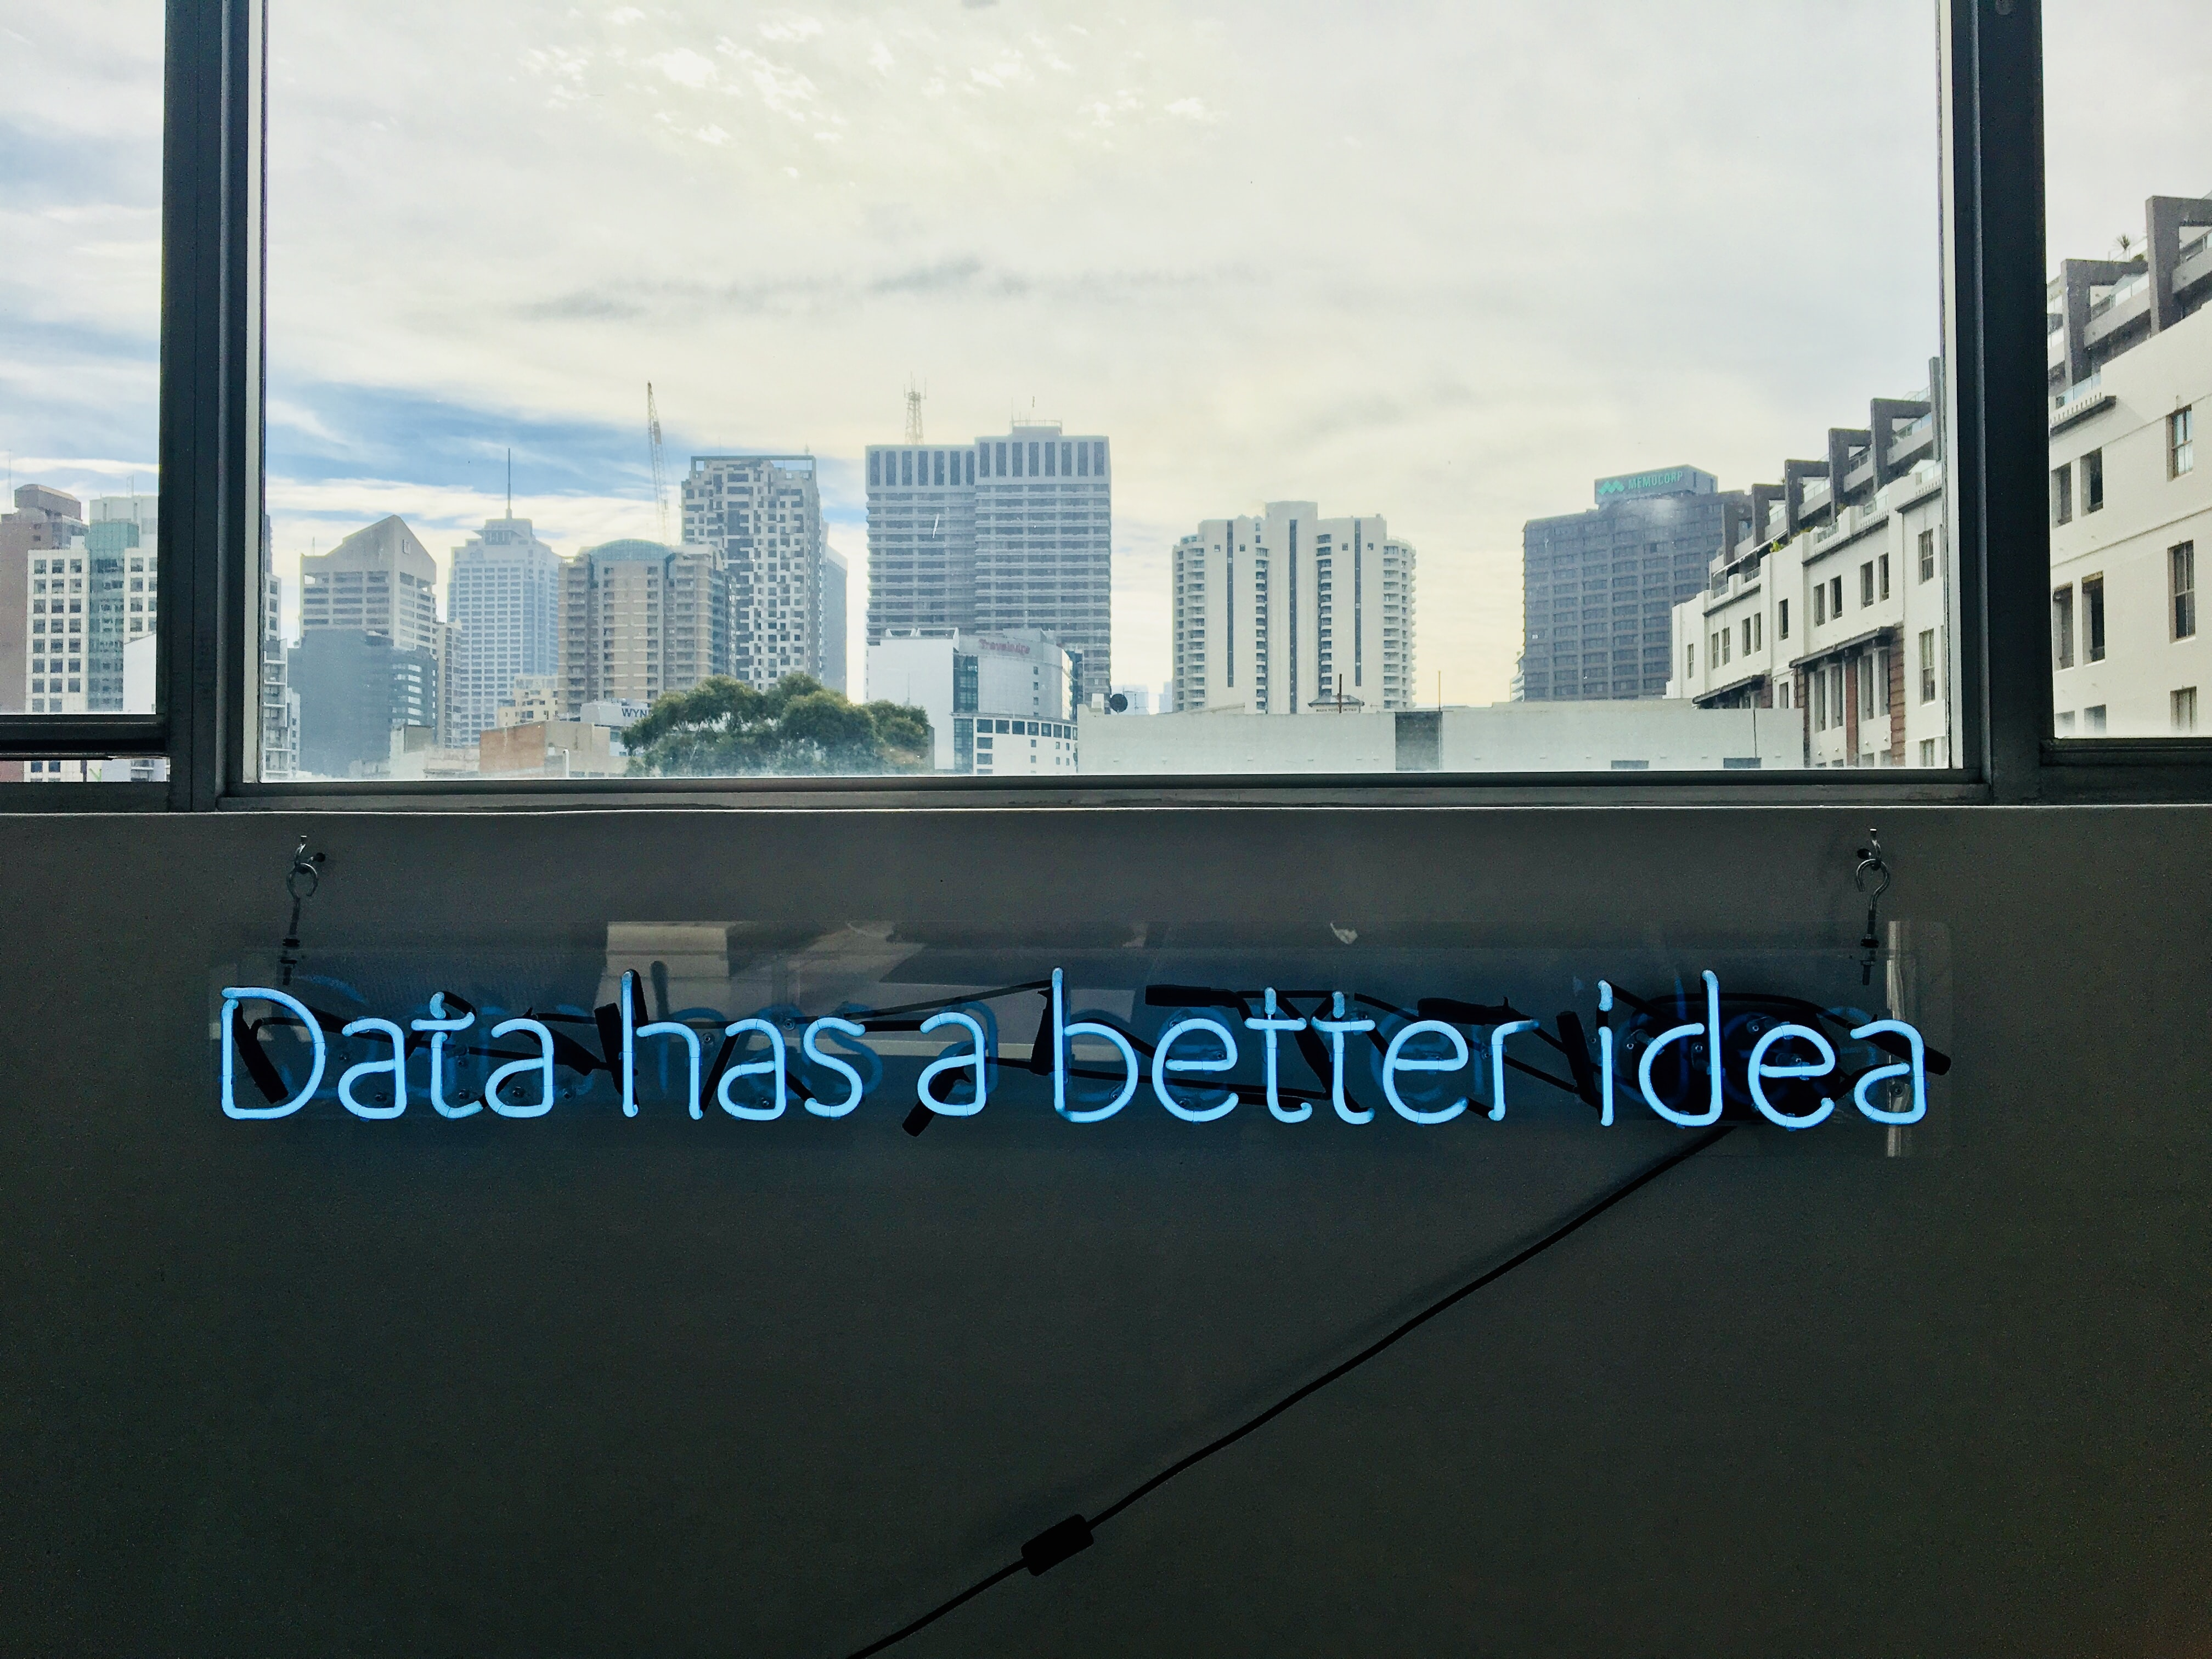 Neon sign with data